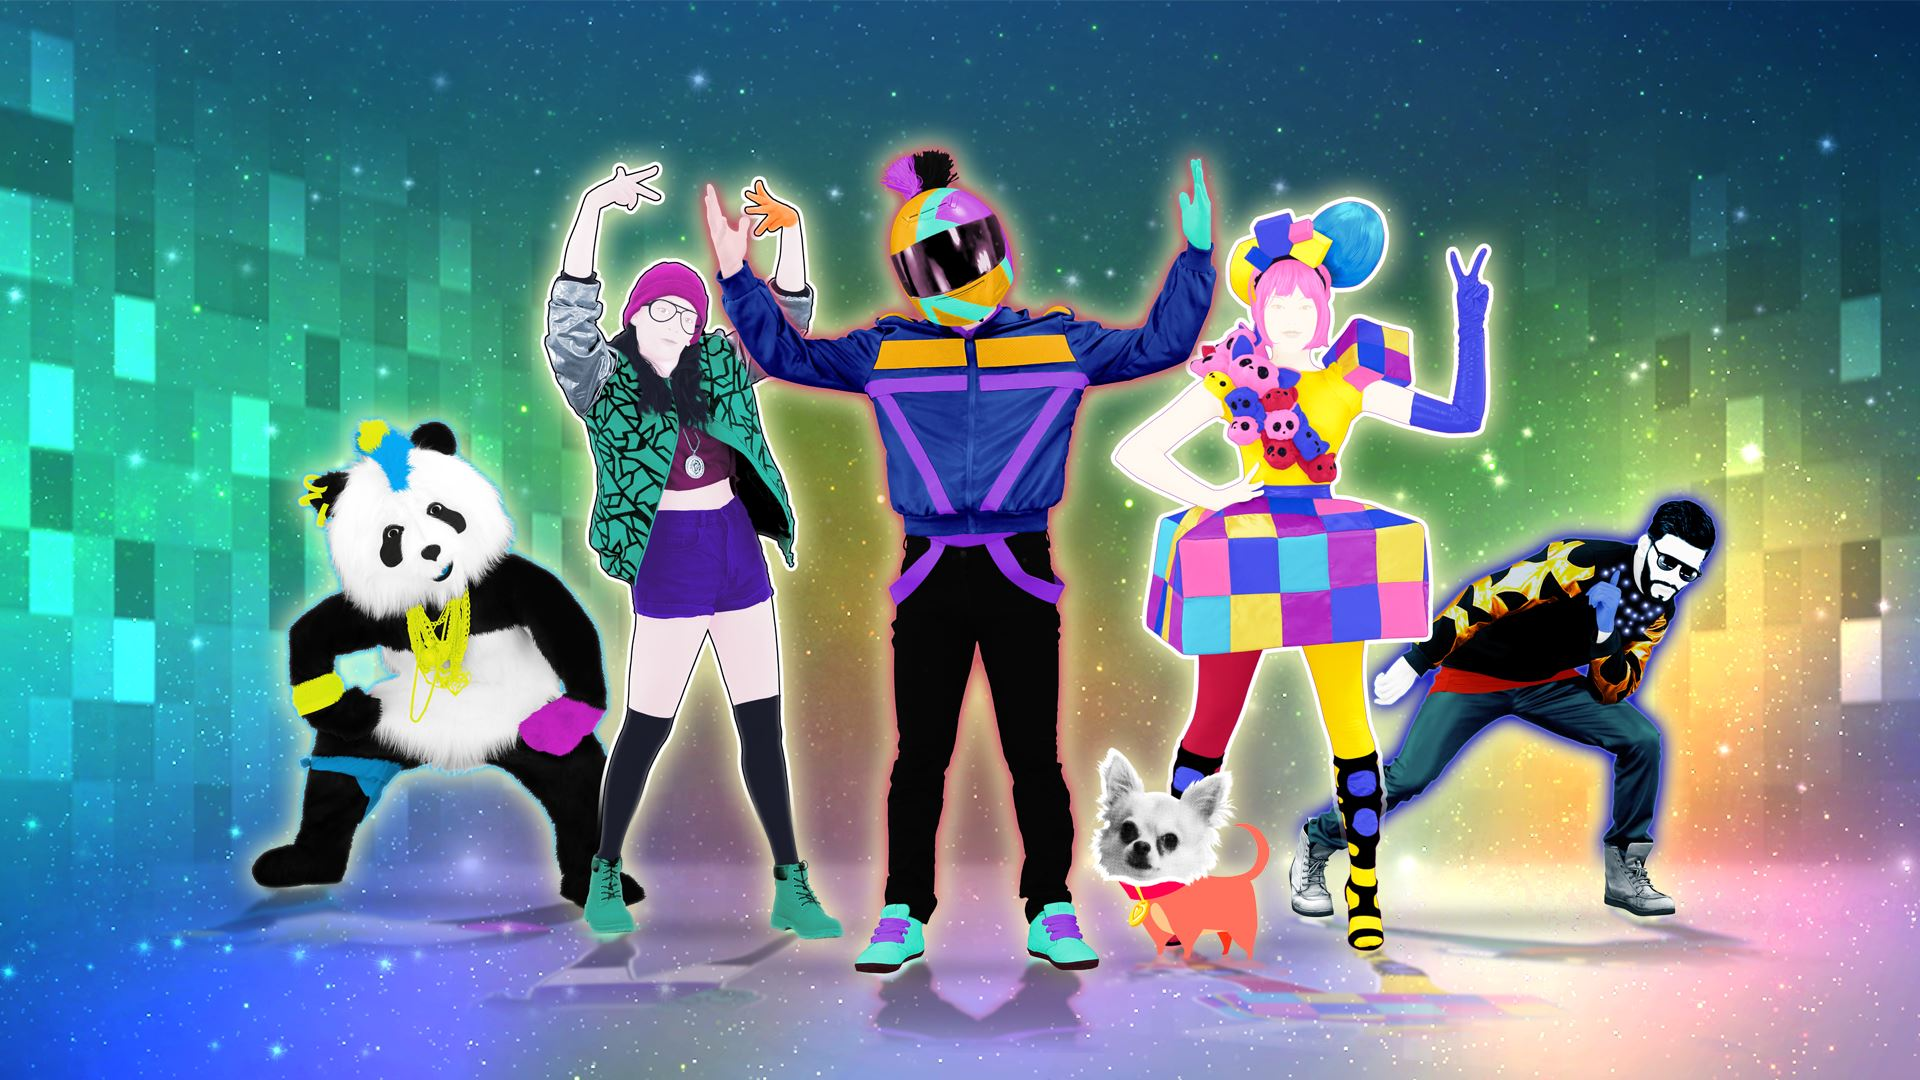 Just Dance Game For Xbox 360 : Review: just dance 2016